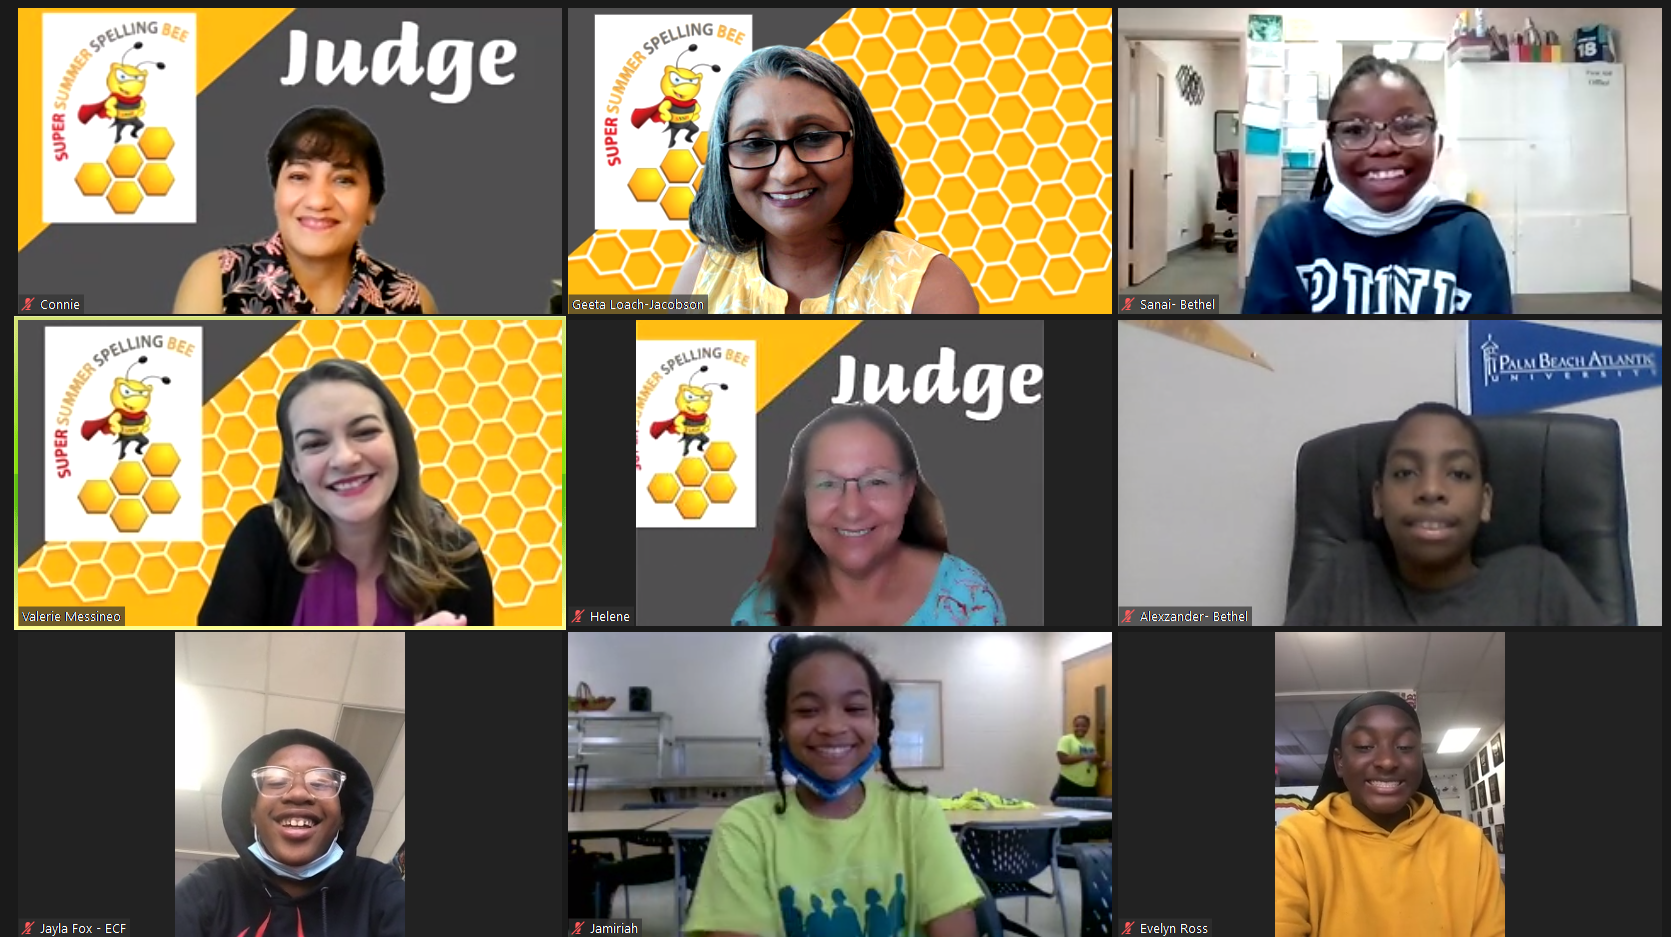 Spelling bee judges and contestants